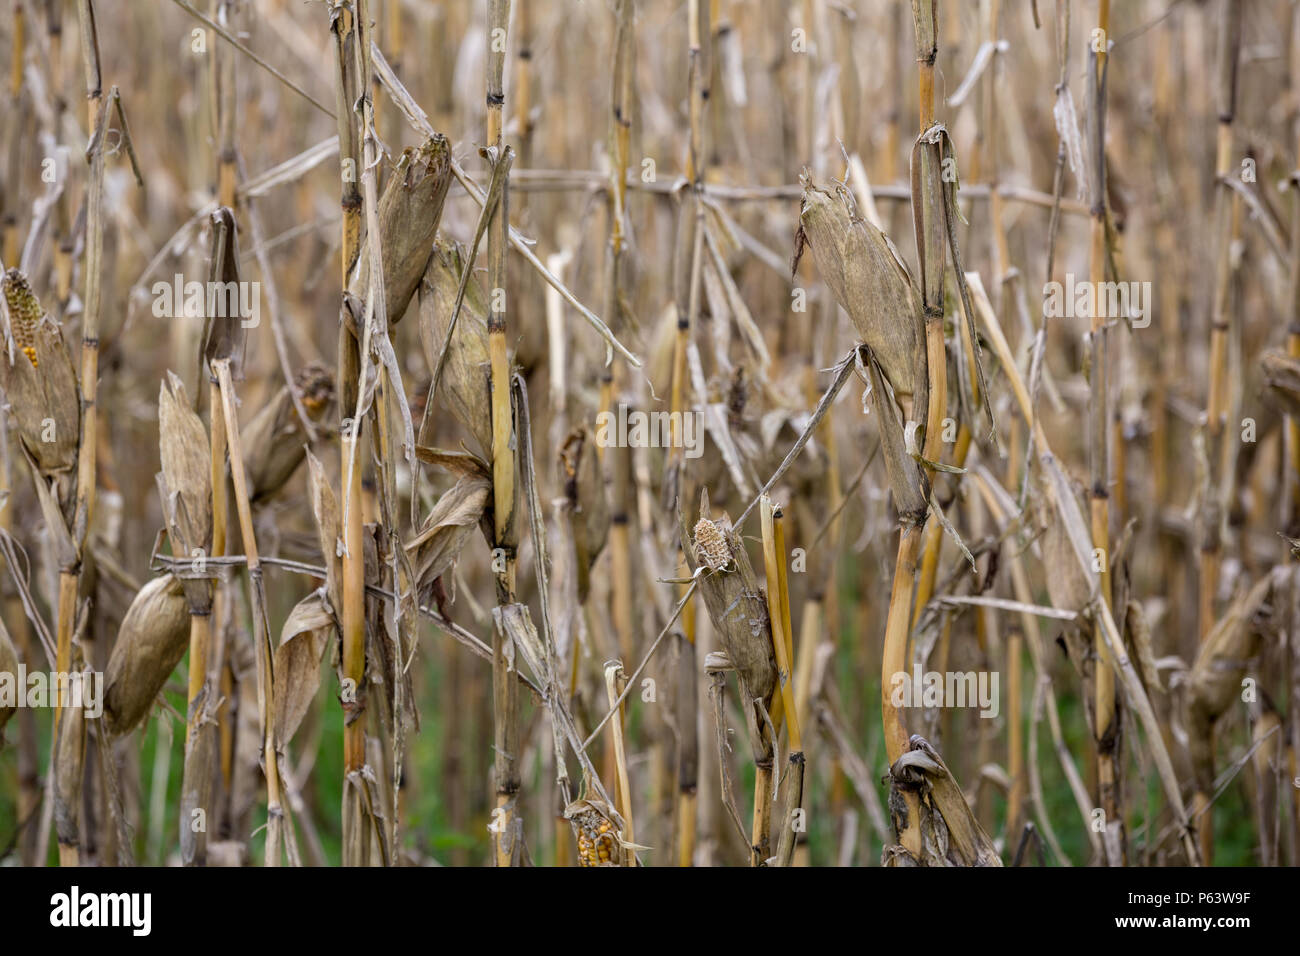 Dead dried corn plants in a field that has suffered long drought-stricken periods. - Stock Image